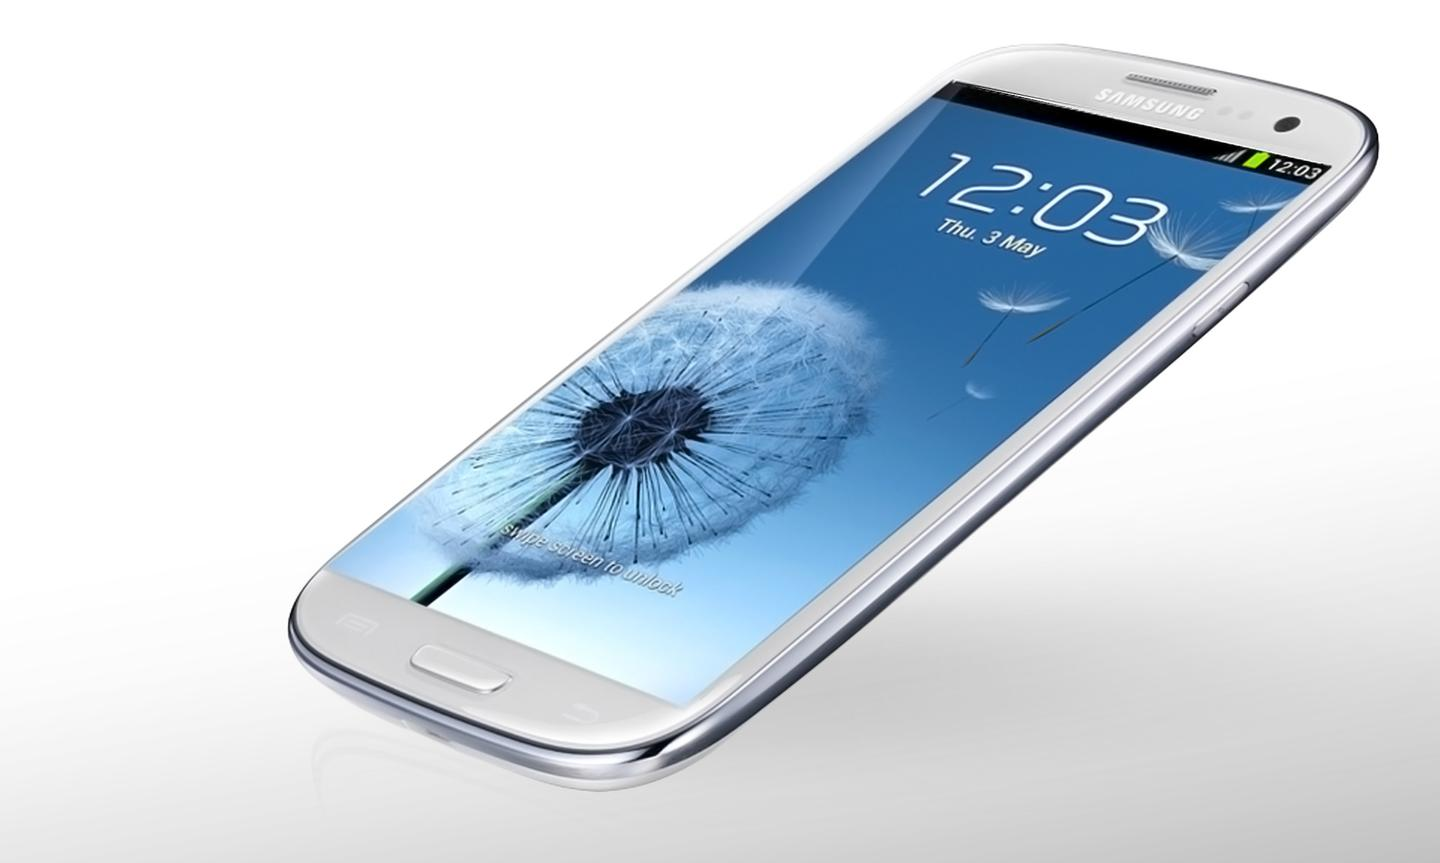 The Galaxy S4 is also rumored to have a larger display (altered Galaxy S3 pictured)